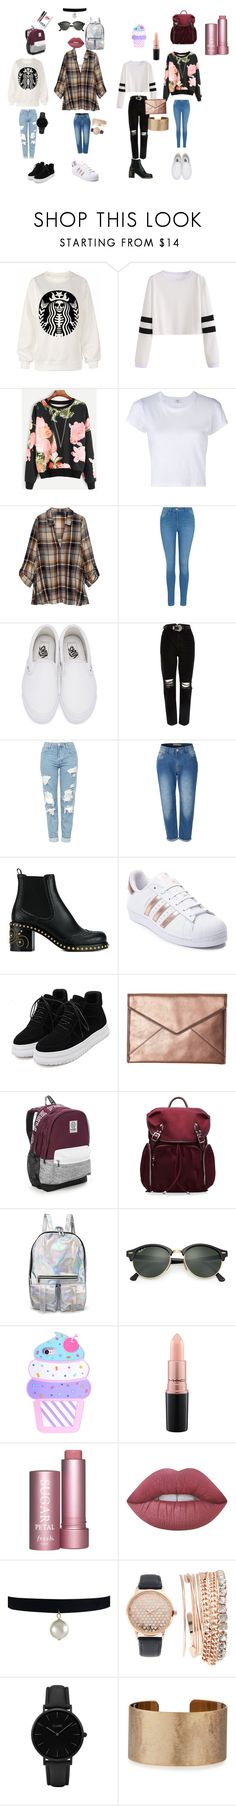 """Untitled #174"" by ameliaristickitty on Polyvore featuring RE/DONE, Bobeau, George, Vans, River Island, Topshop, LE3NO, Miu Miu, adidas and WithChic"